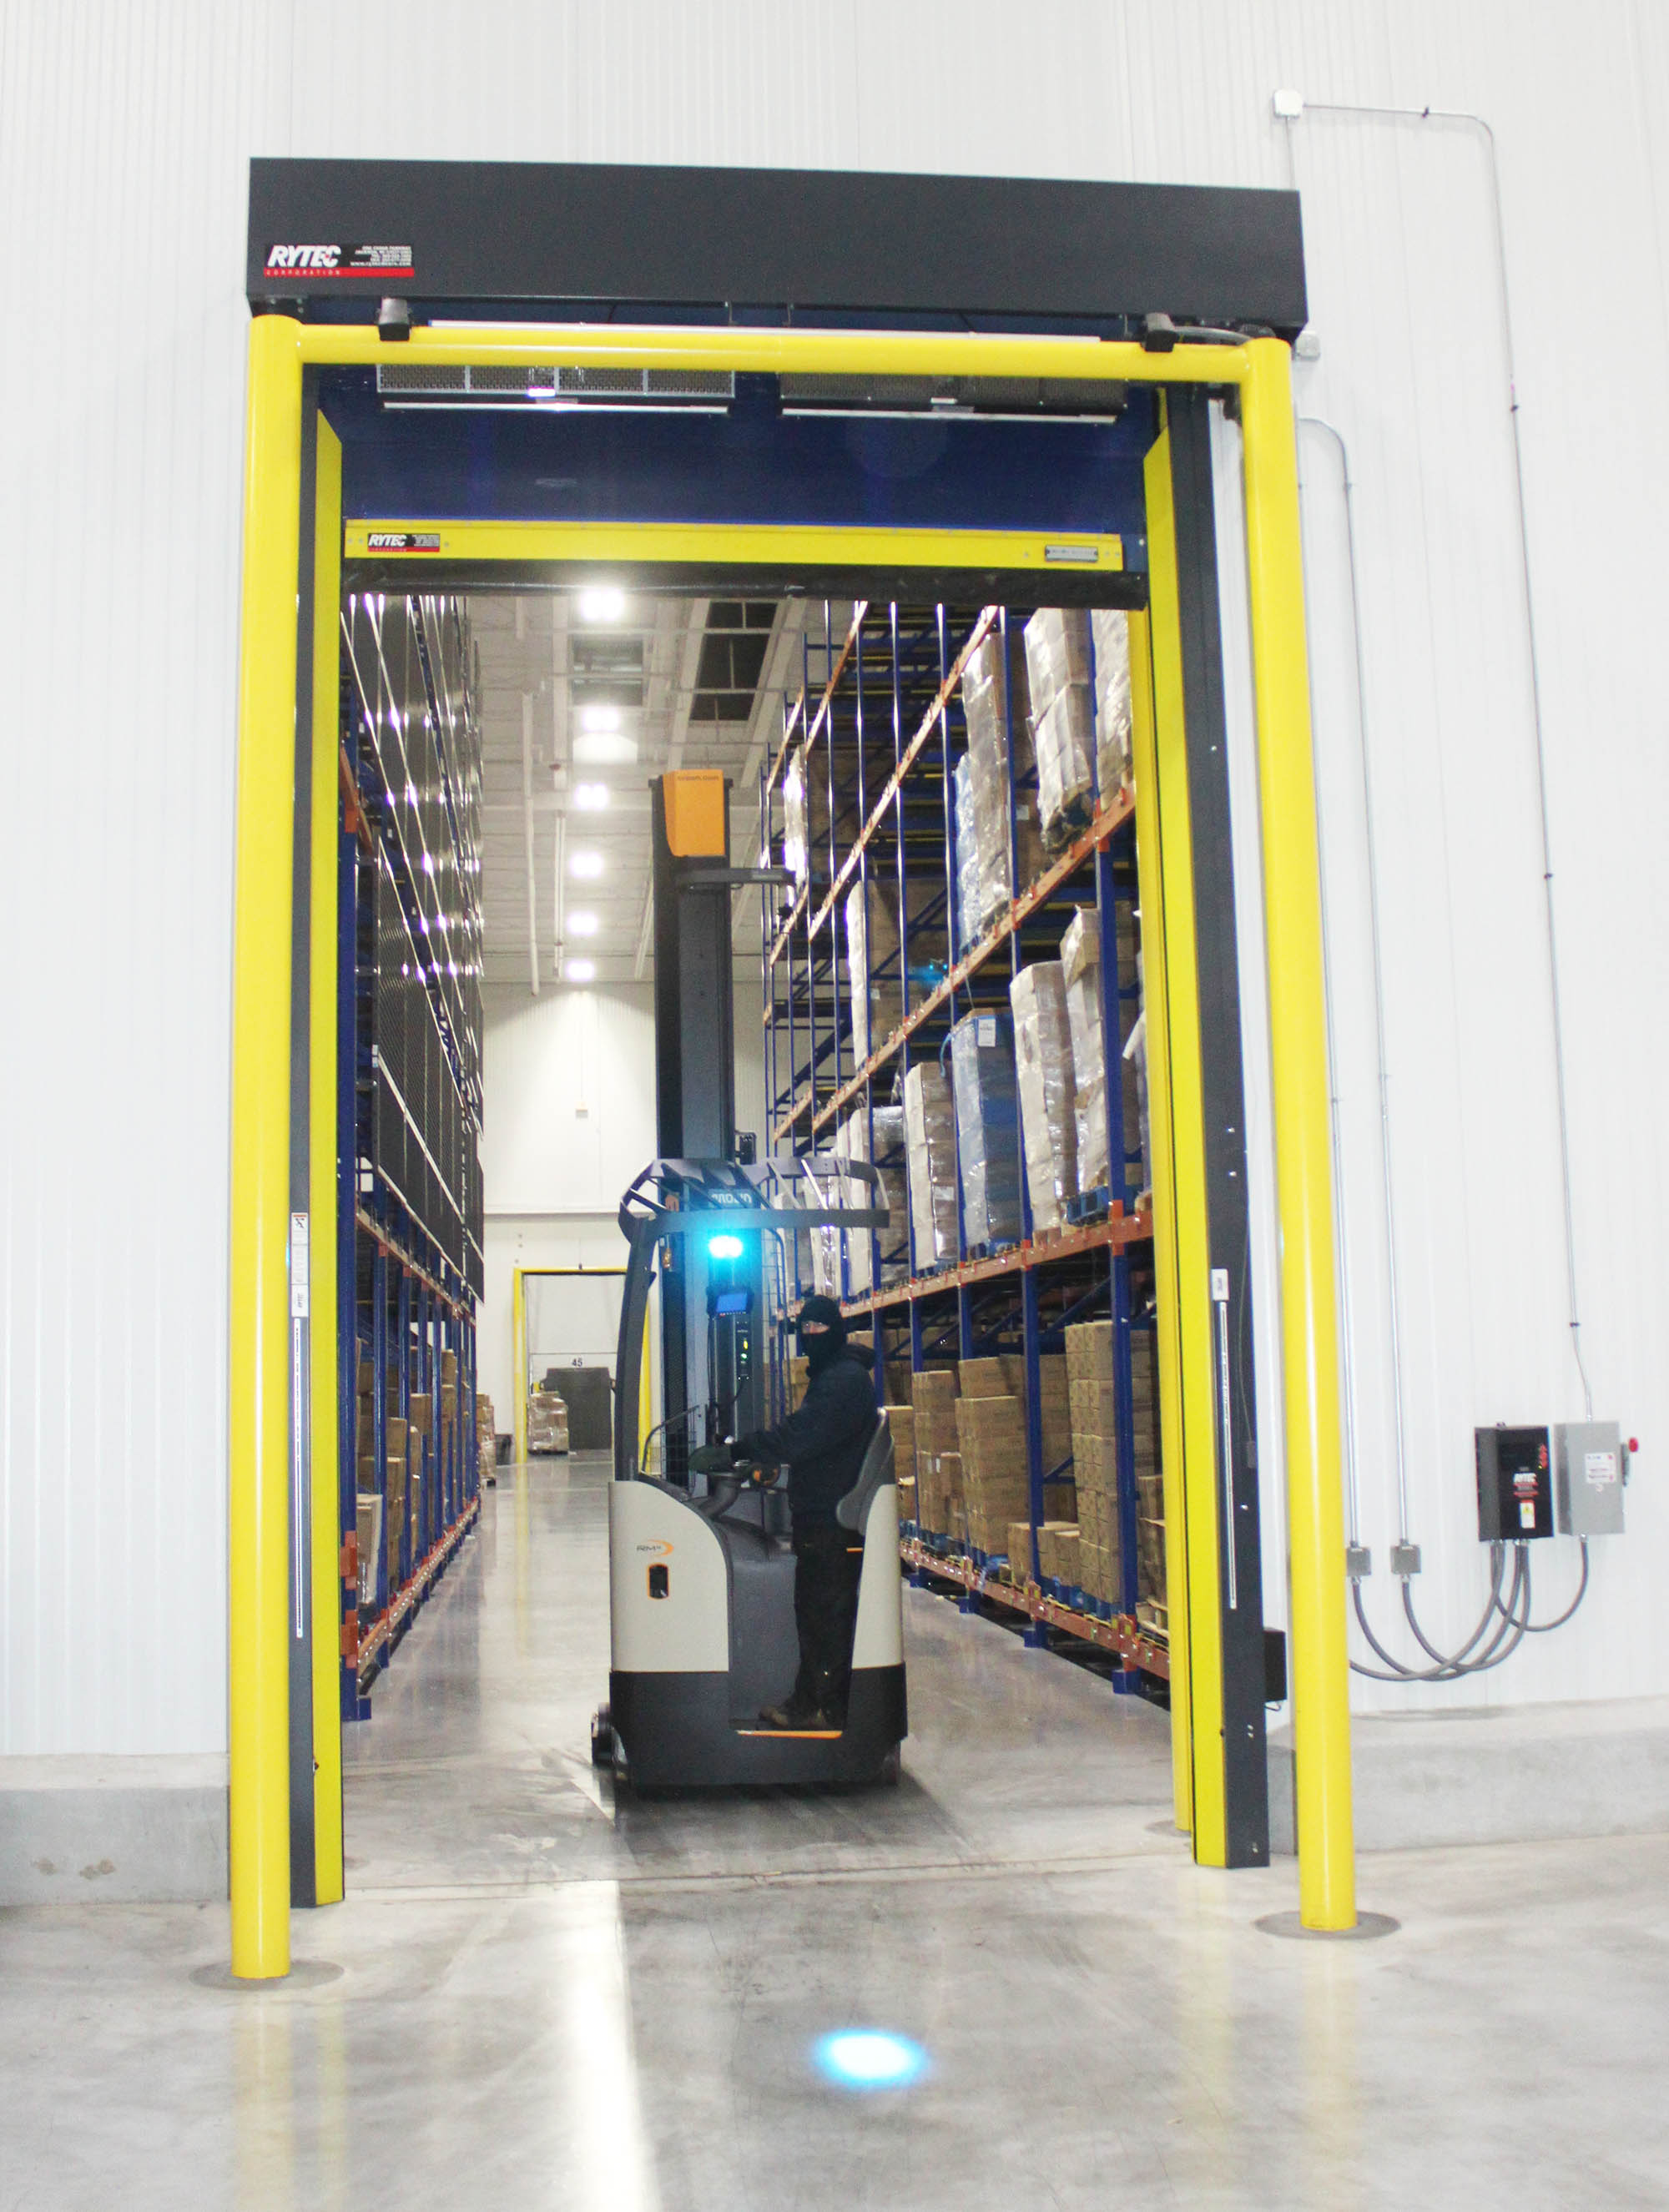 Worker Safety in Manufacturing and Warehousing Operations